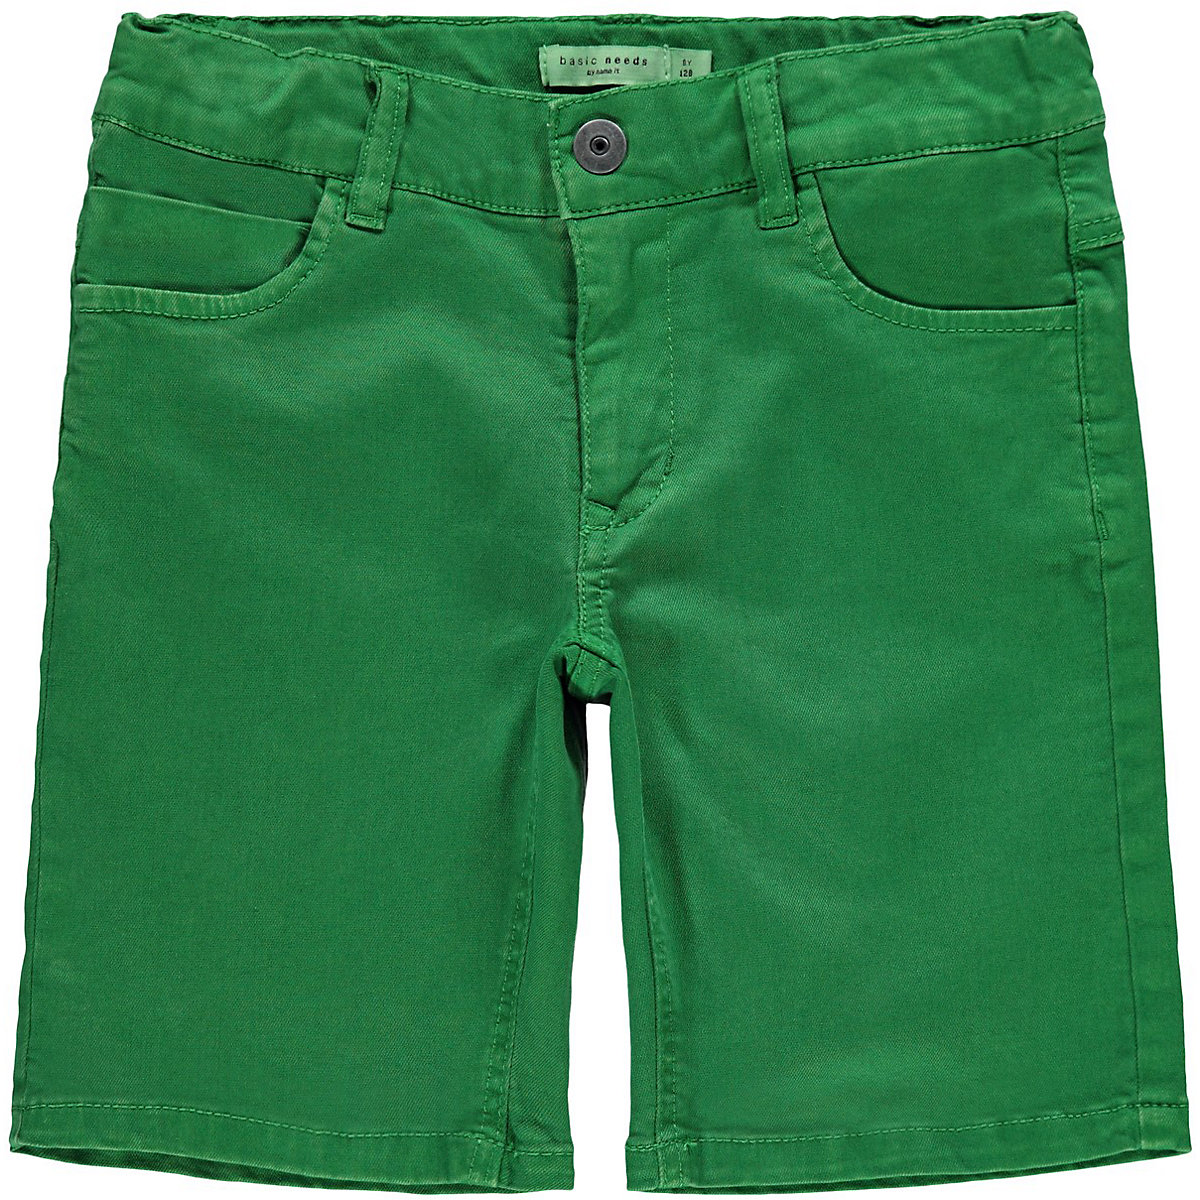 NAME IT Shorts 10626693 for boys and girls child sport for teenagers clothes Cotton Elastic Waist Boys